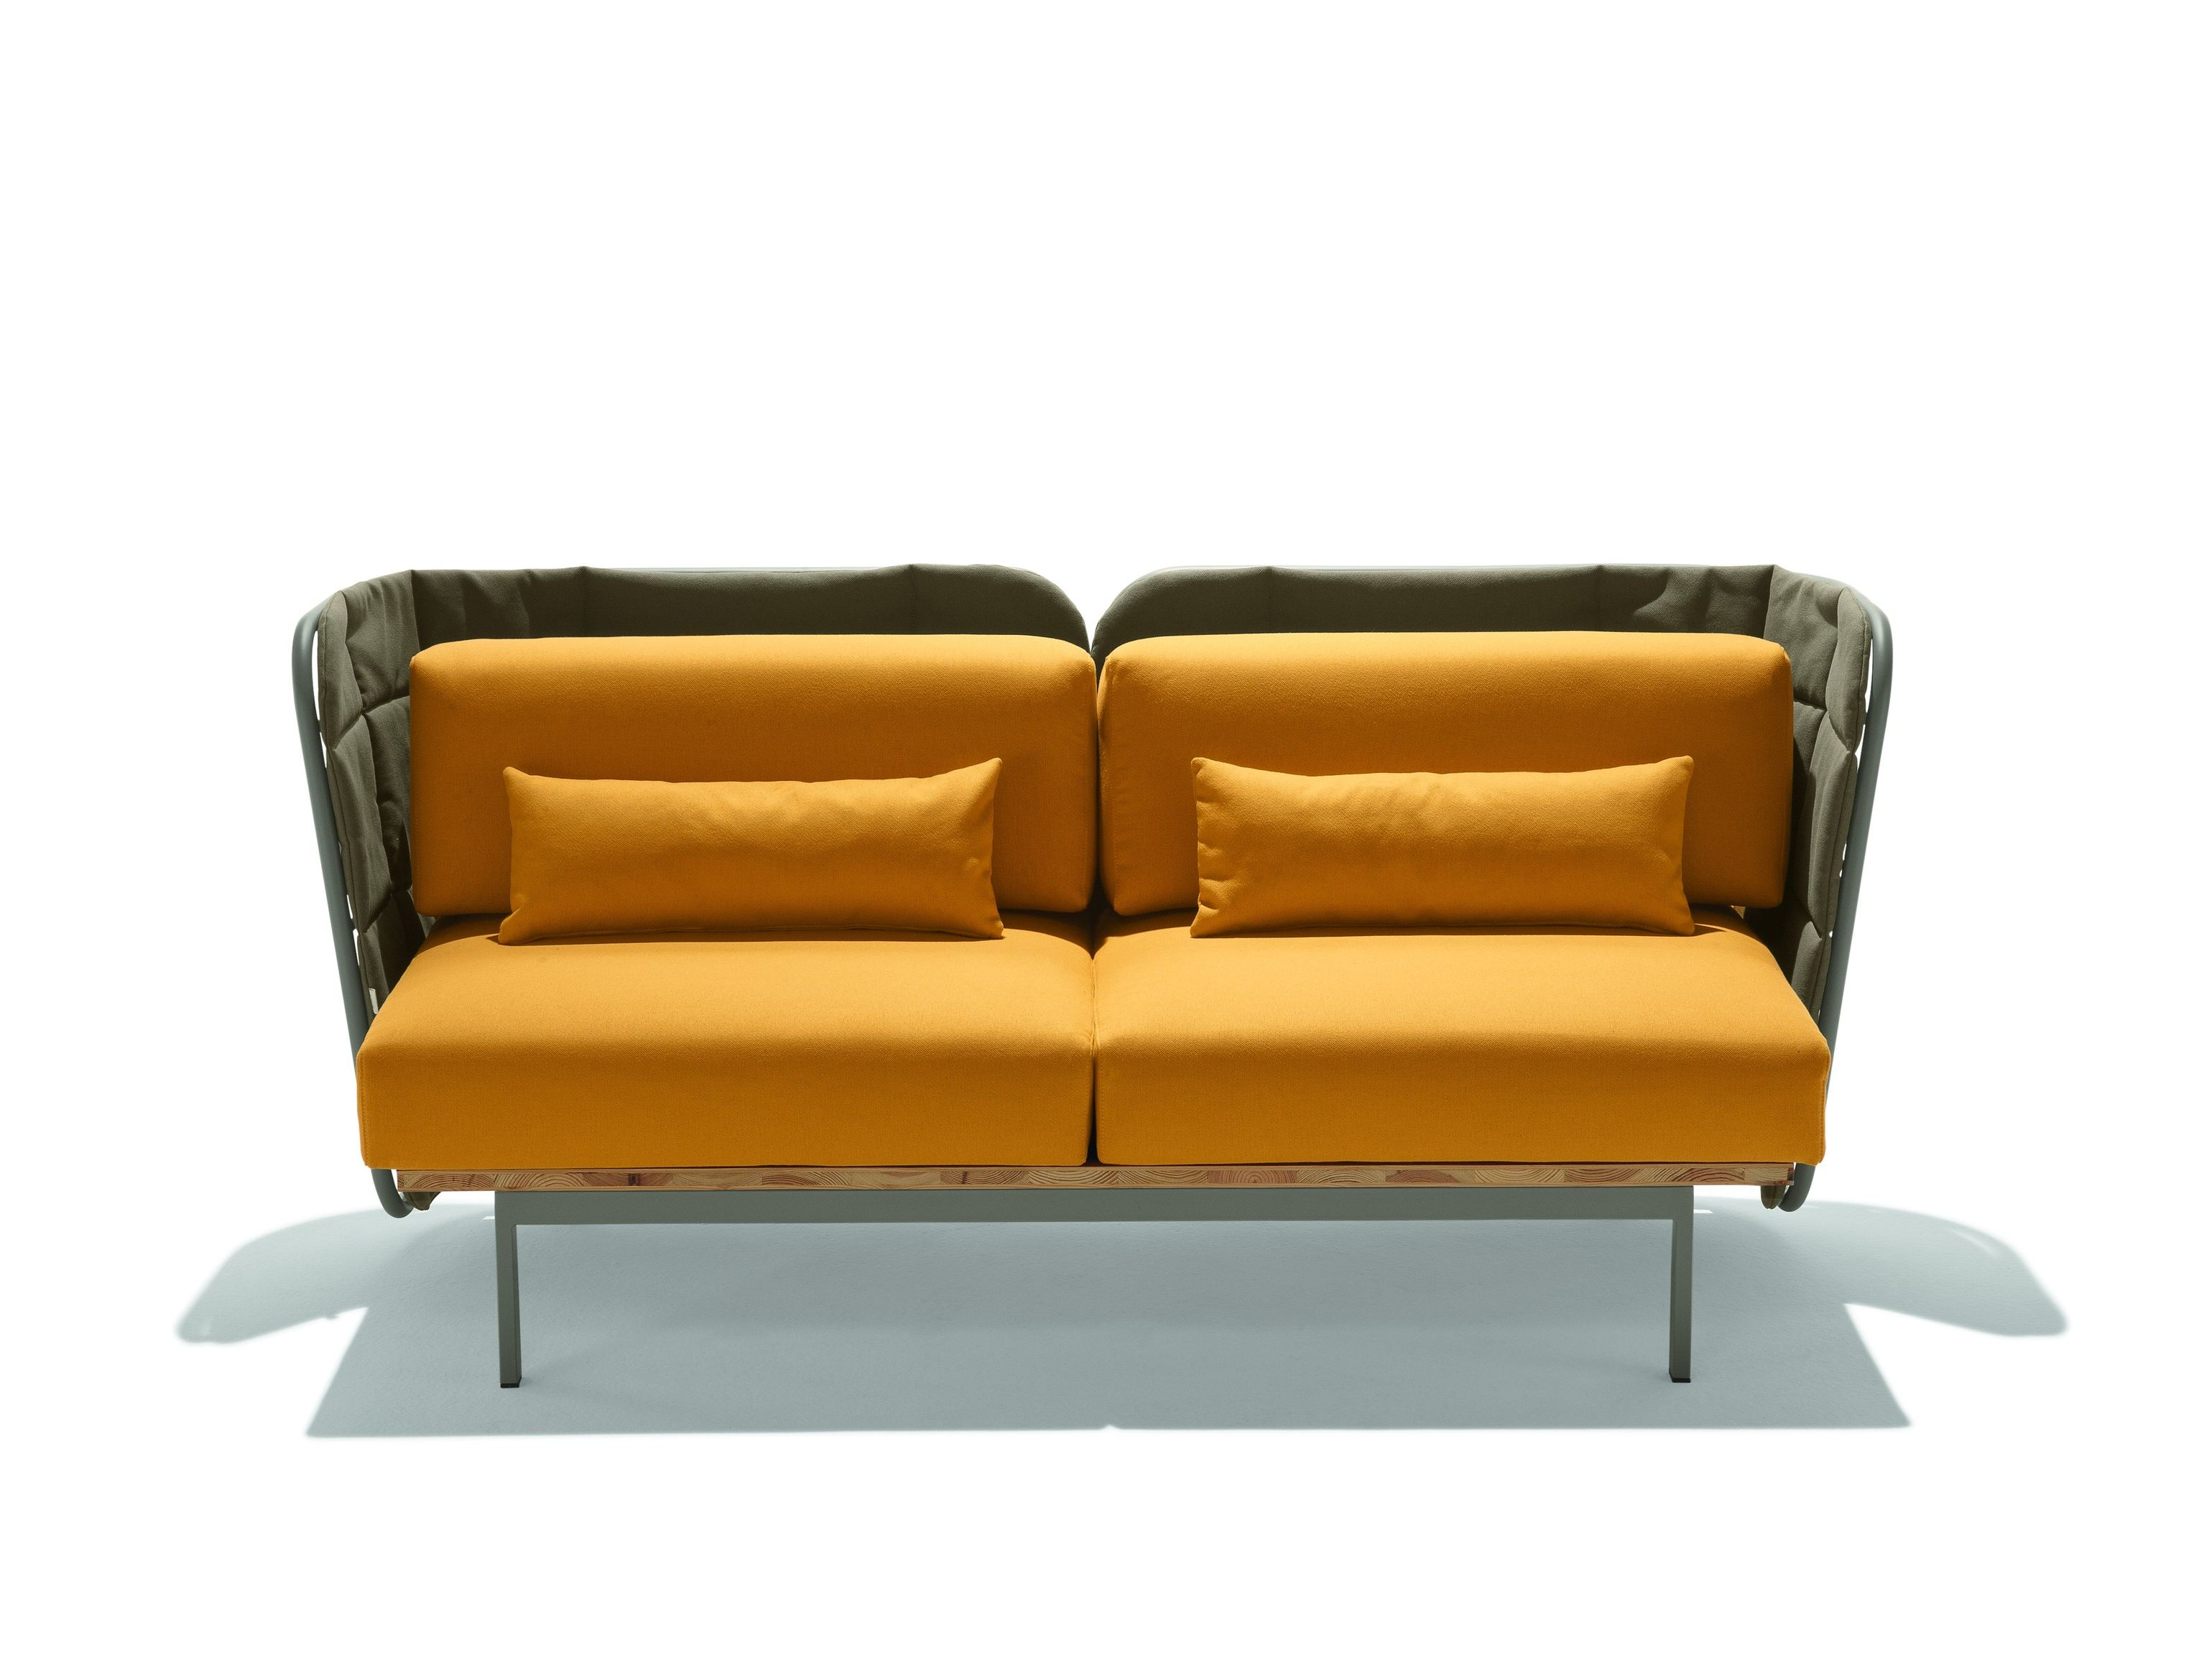 sofa and more sleeper sofas columbus ohio metal jujube d b collection by chairs